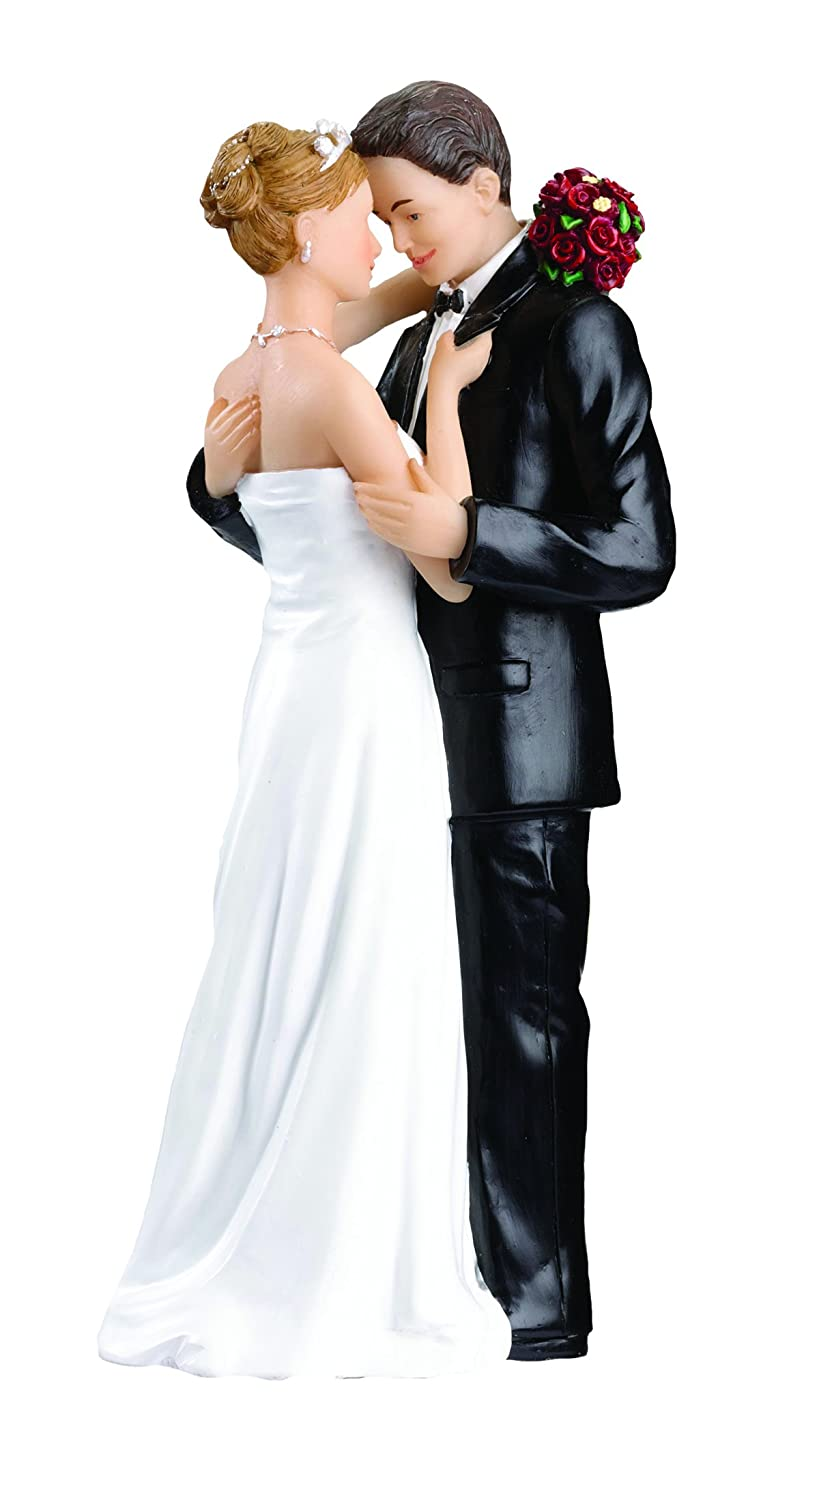 Amazon Lillian Rose Caucasian Bride And Groom Wedding Cake Topper Home Kitchen